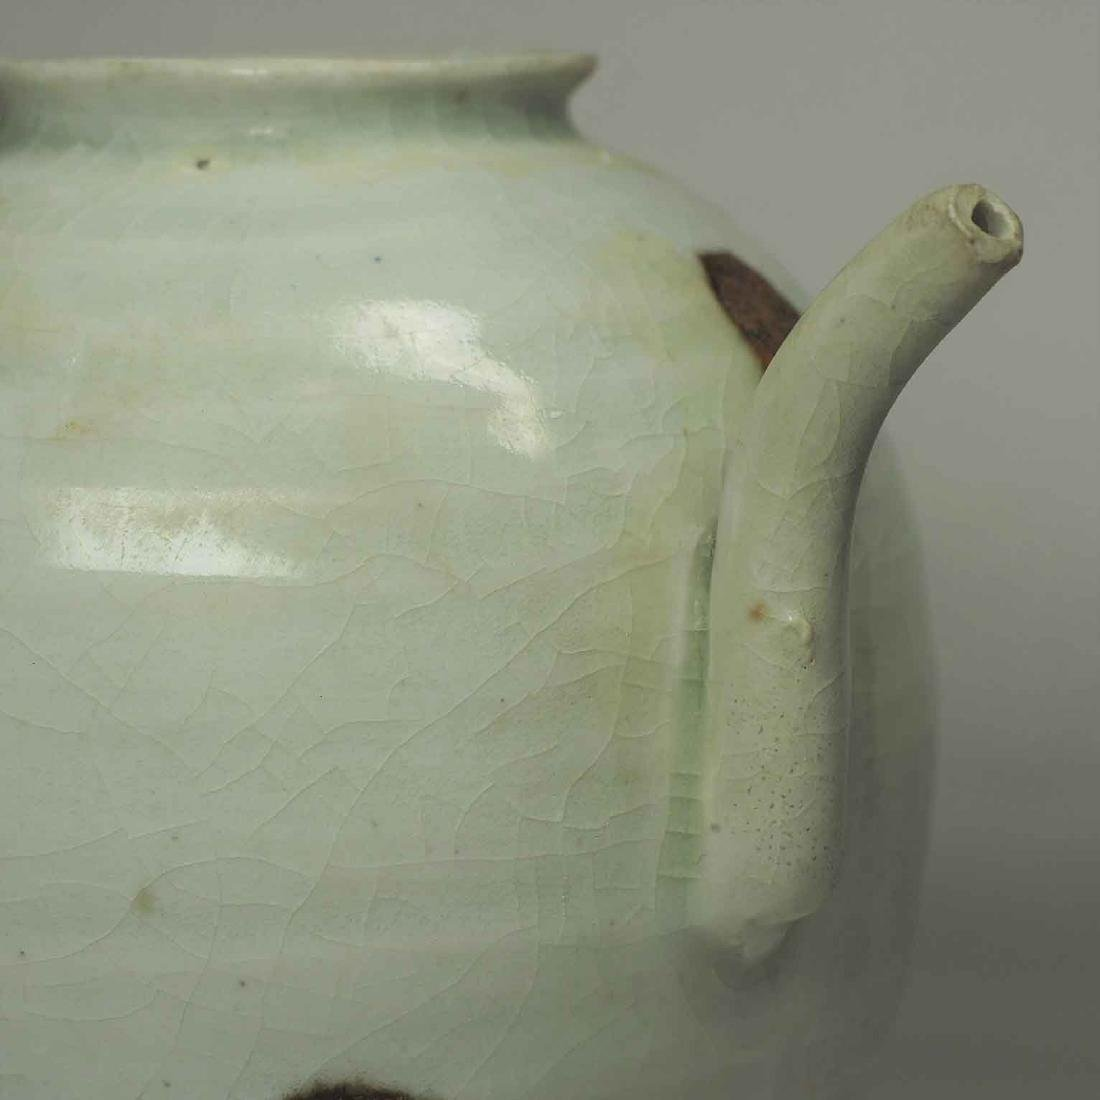 Ewer with Brown Spot, Yuan Dynasty - 10